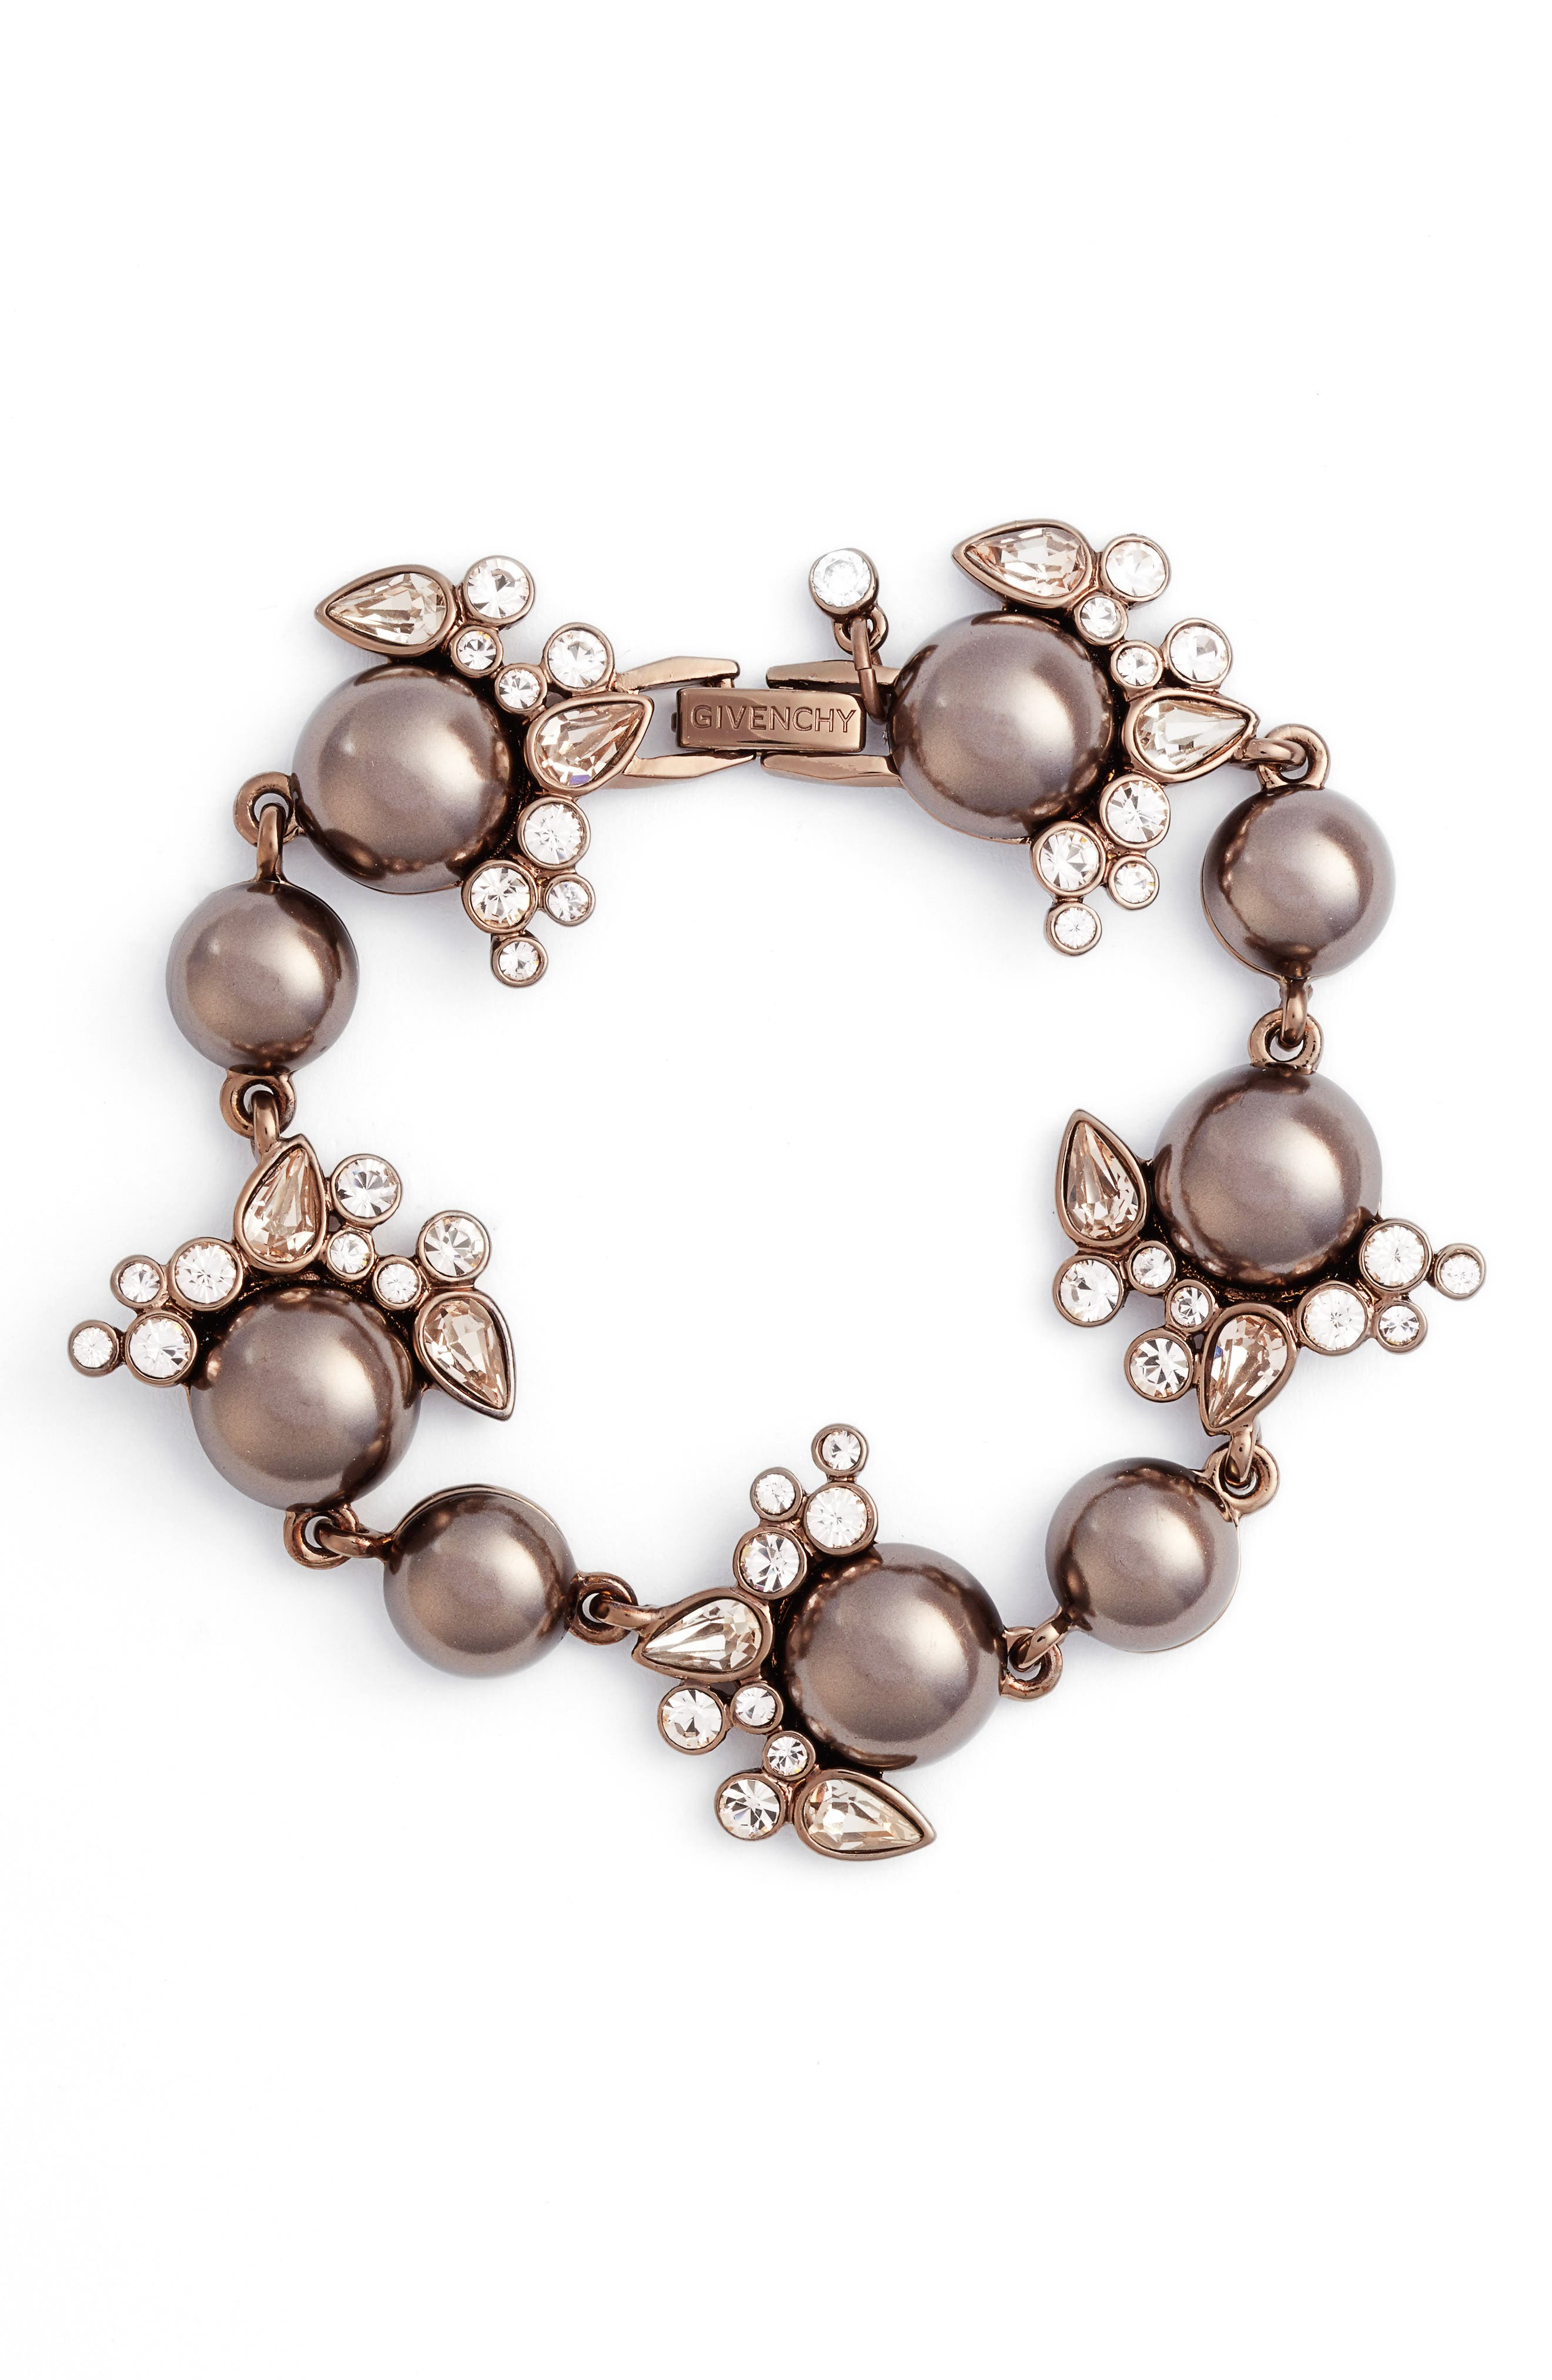 Alternate Image 1 Selected - Givenchy Imitation Pearl & Crystal Bracelet